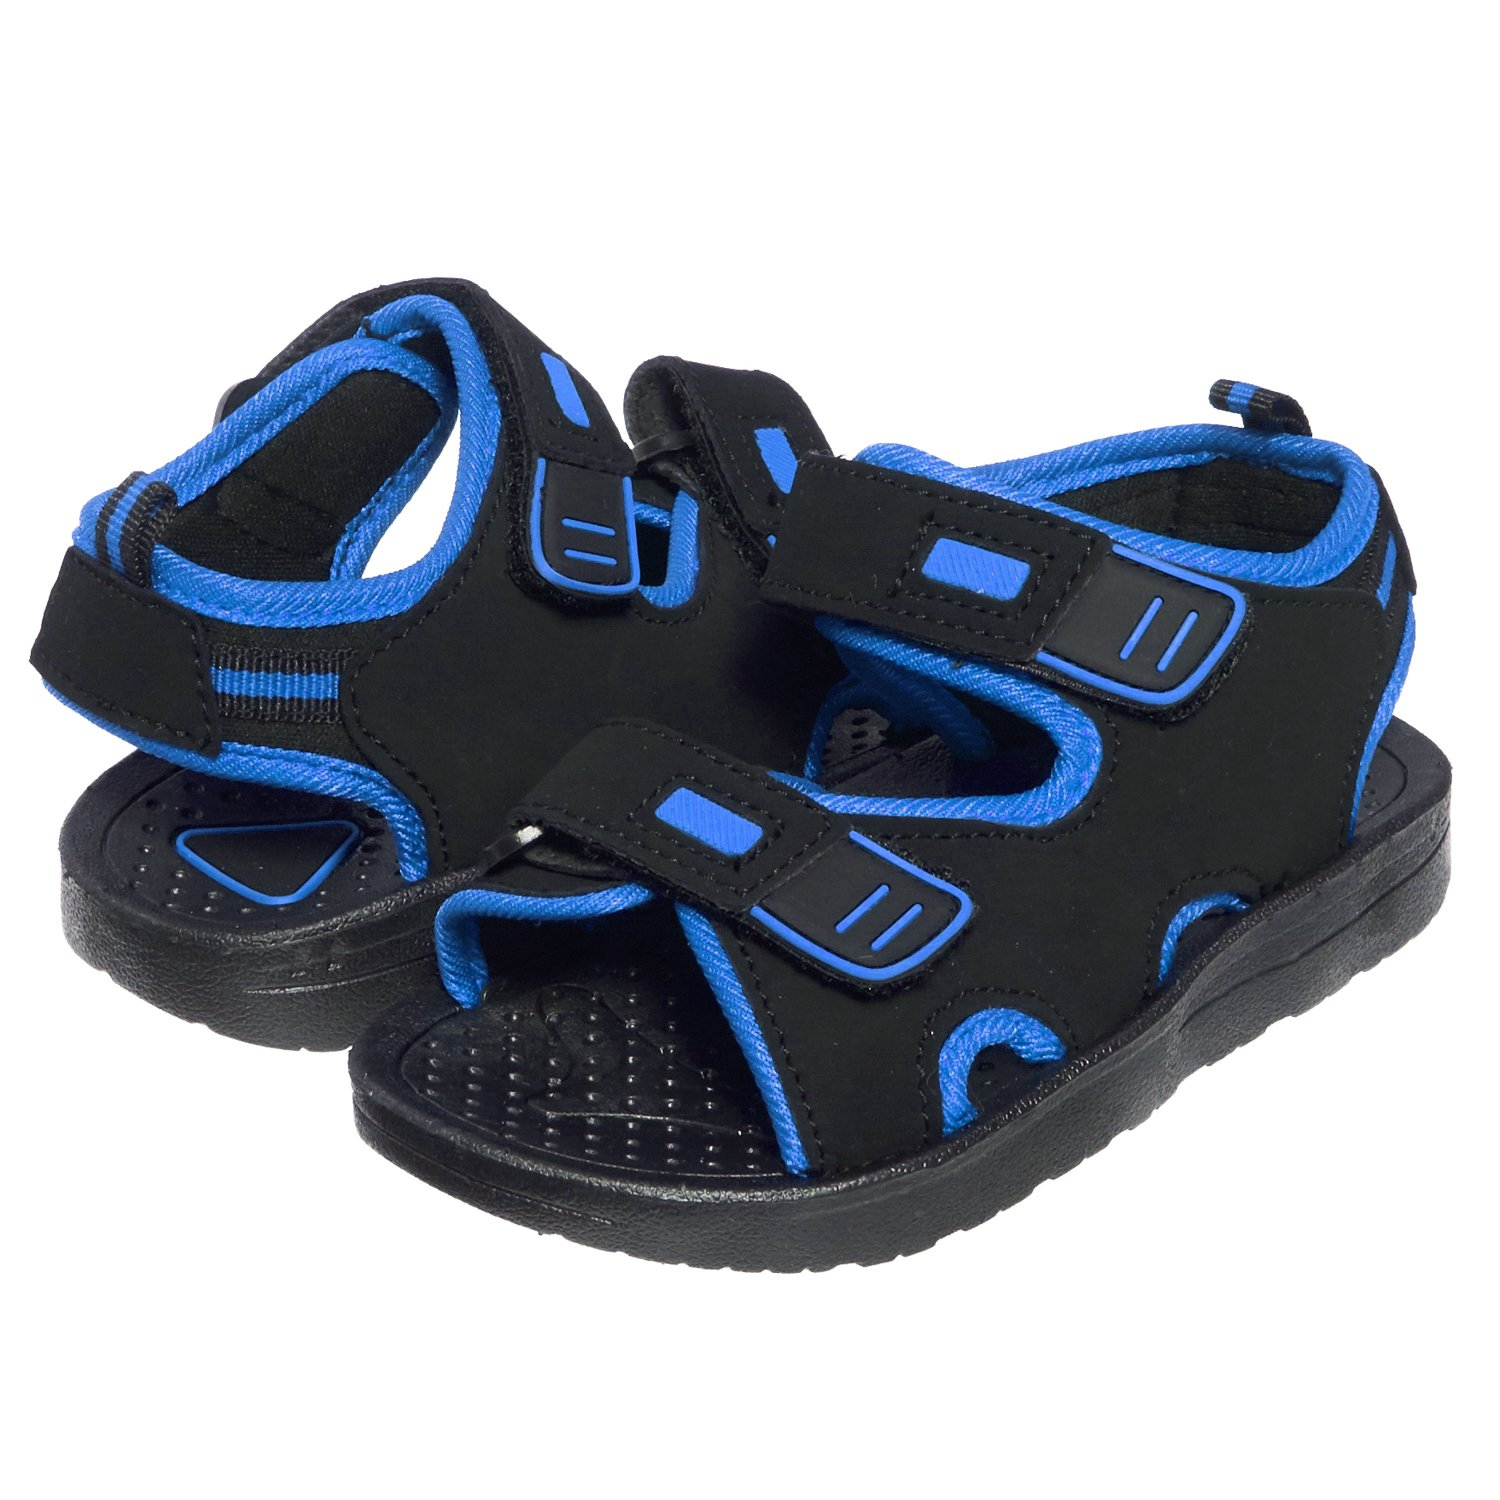 PROPEL X Boys Double Strapped Closed-Toe Sport Sandals